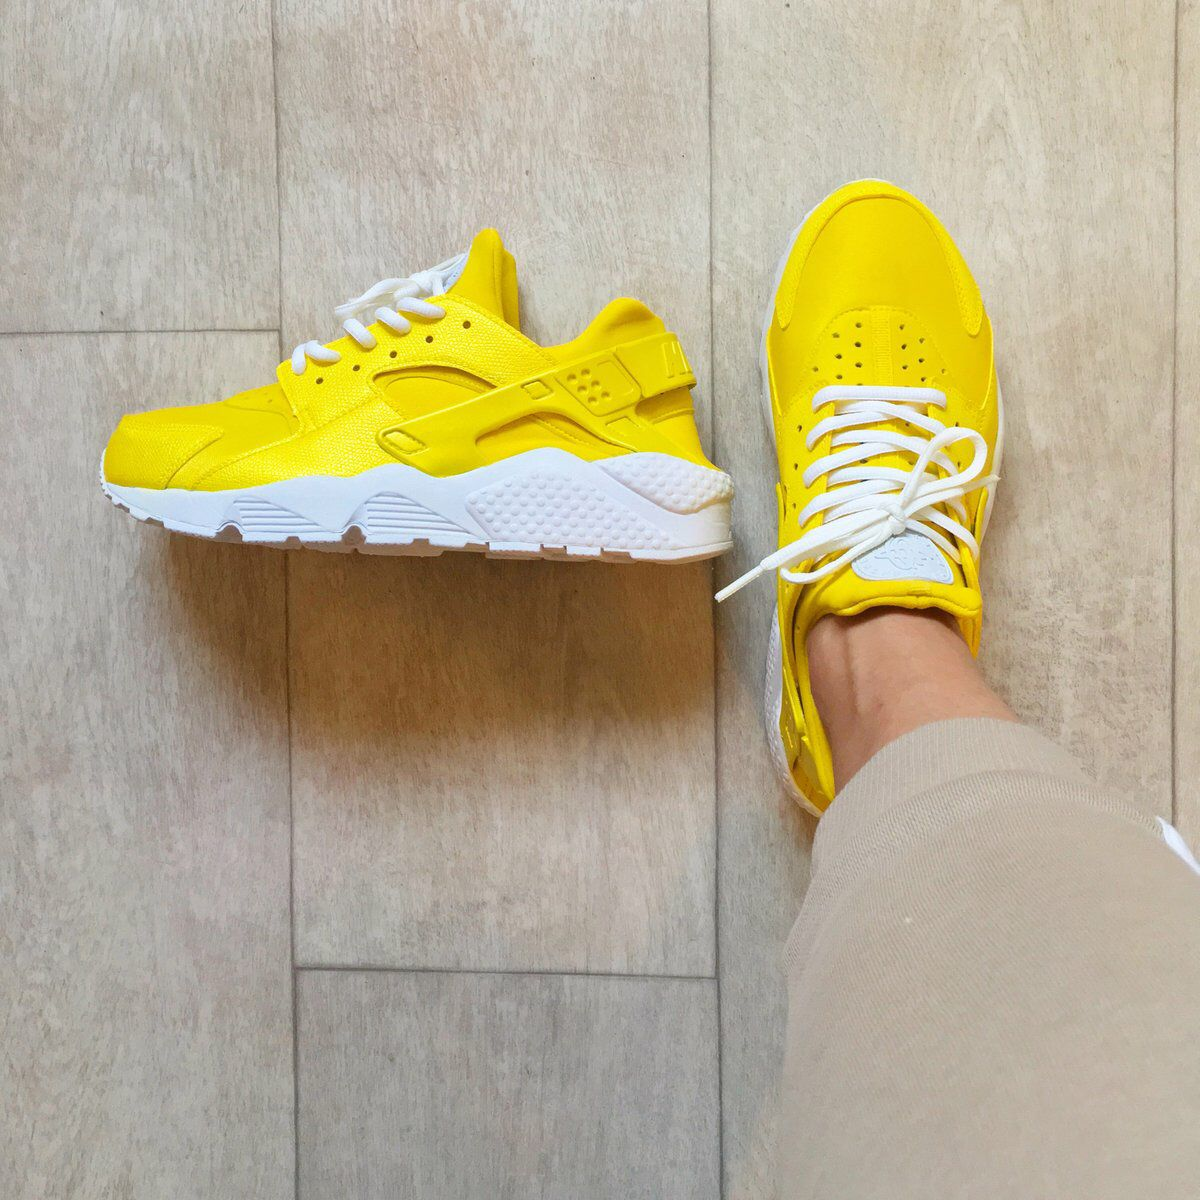 LEMON ZEST Nike Huarache customs by Kylie Boon   jklcustoms ... 8d1da5d5f